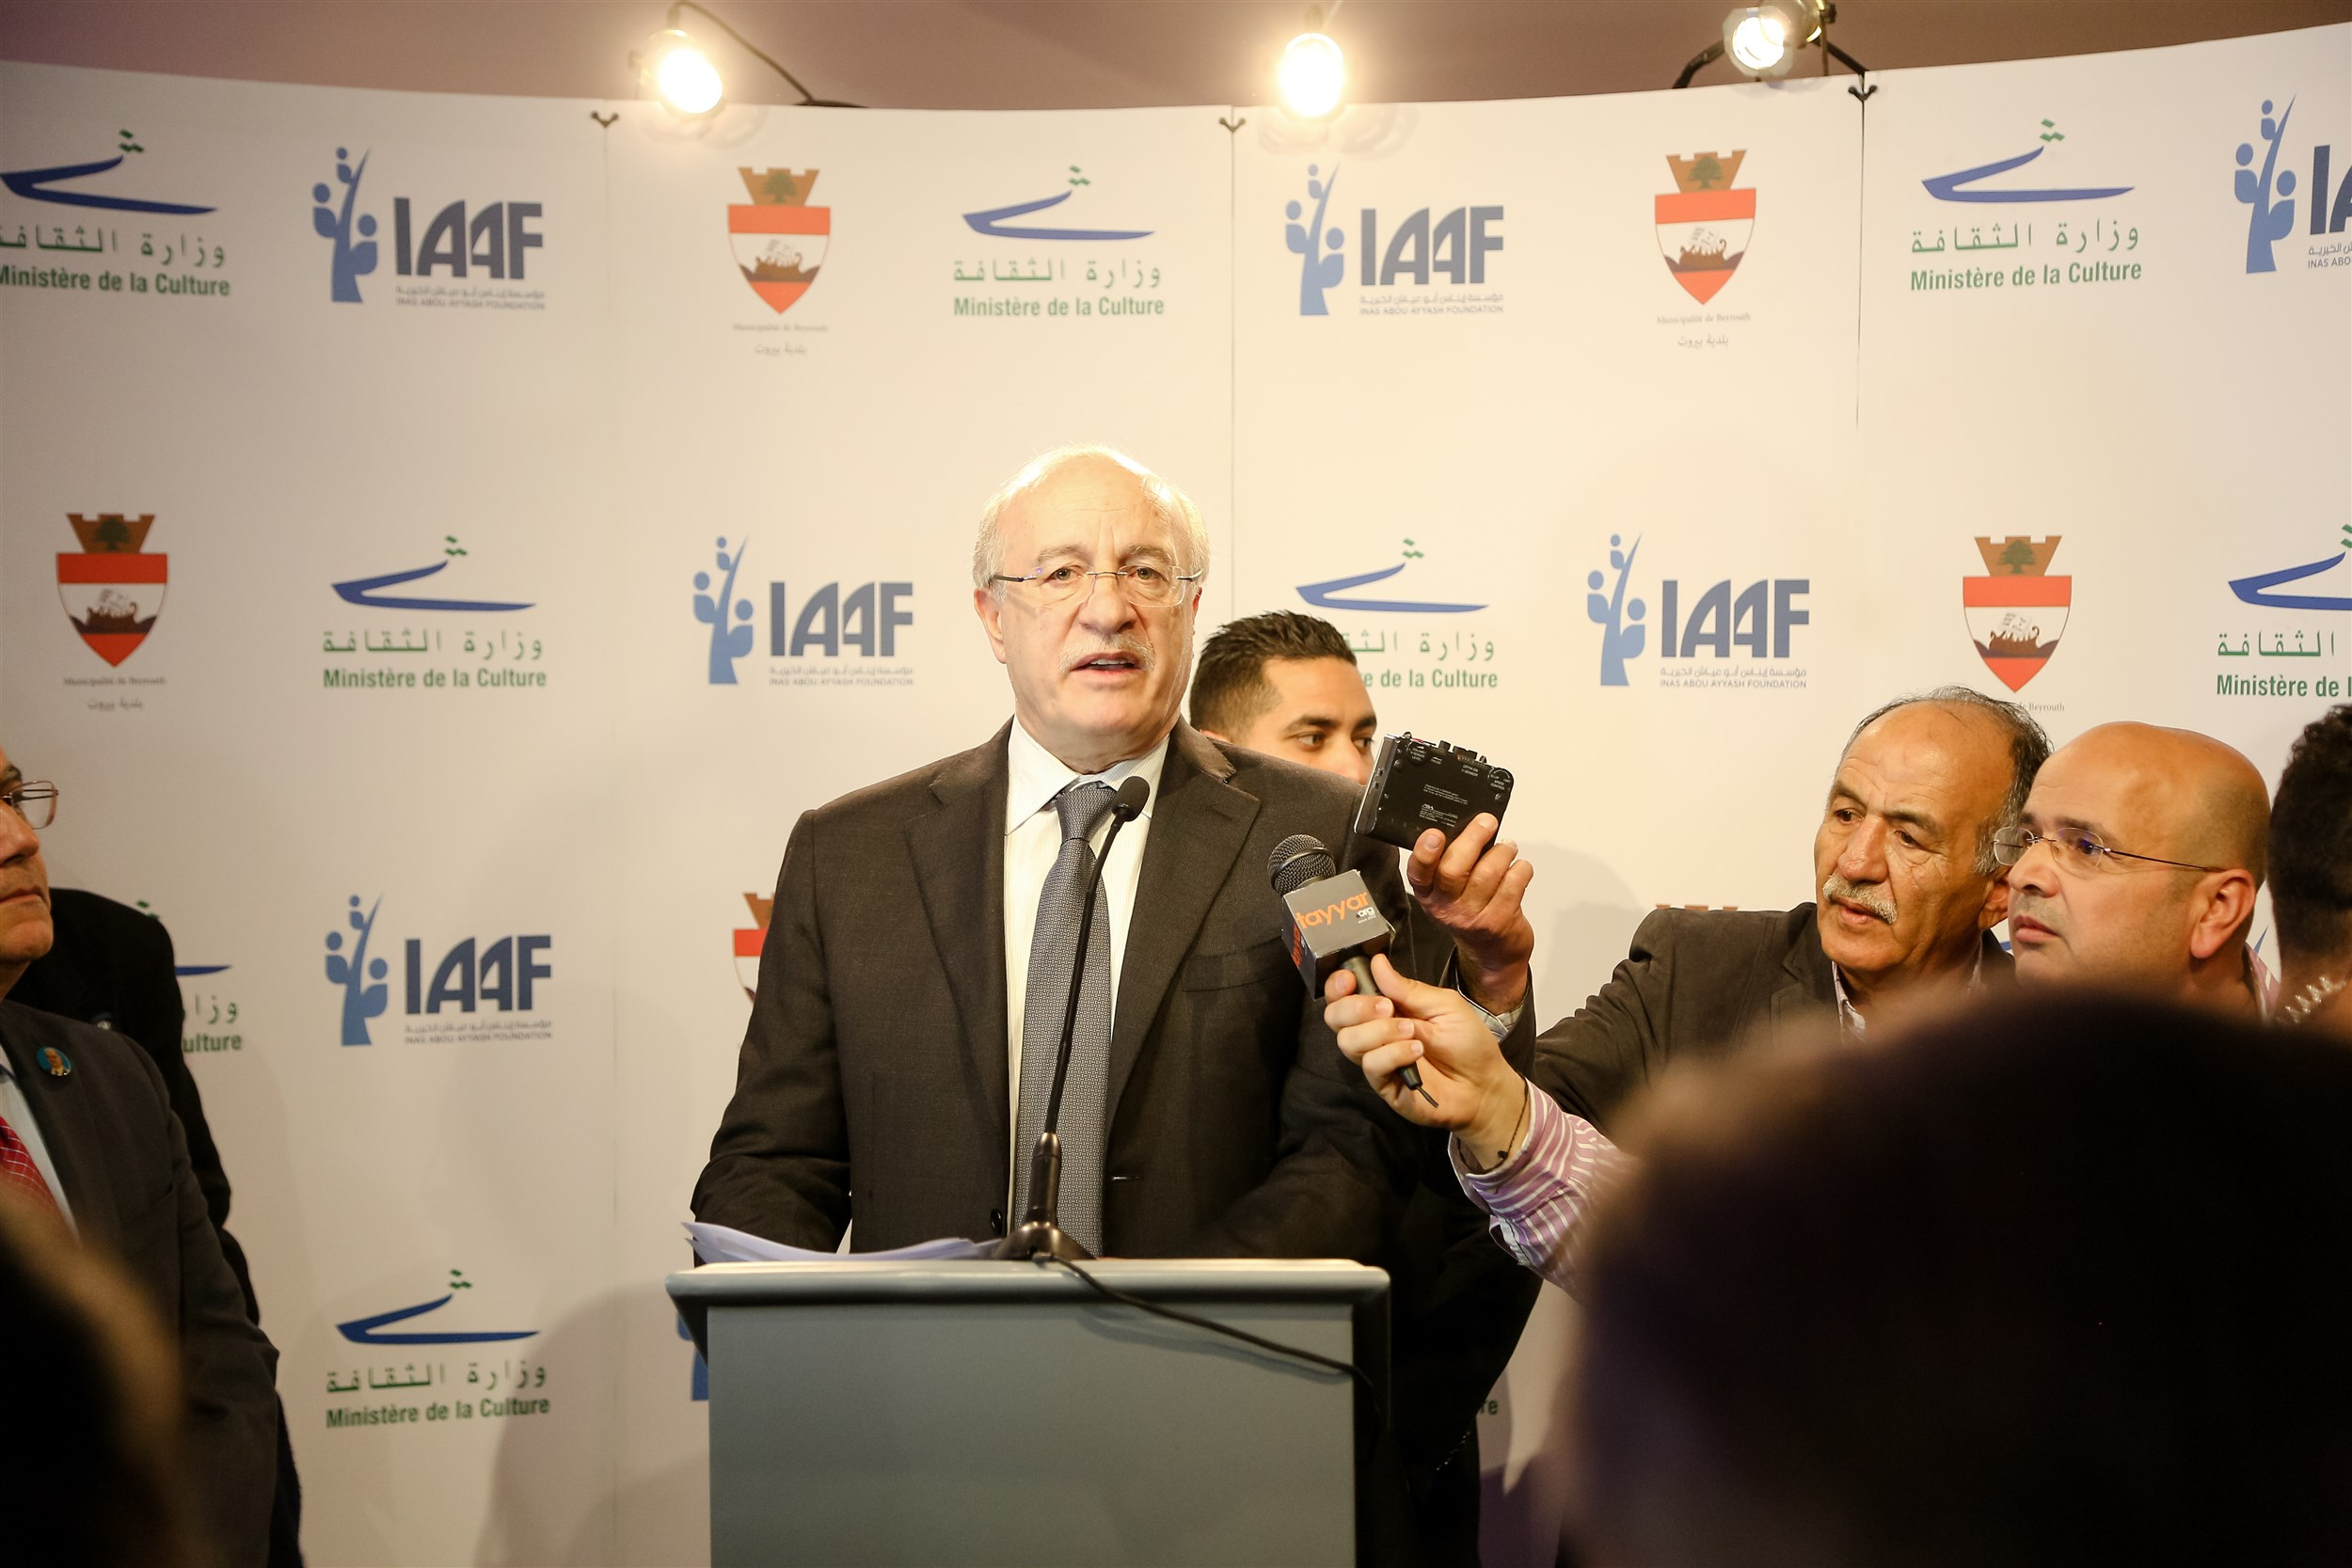 he dr. ghattas khoury speaking to the press